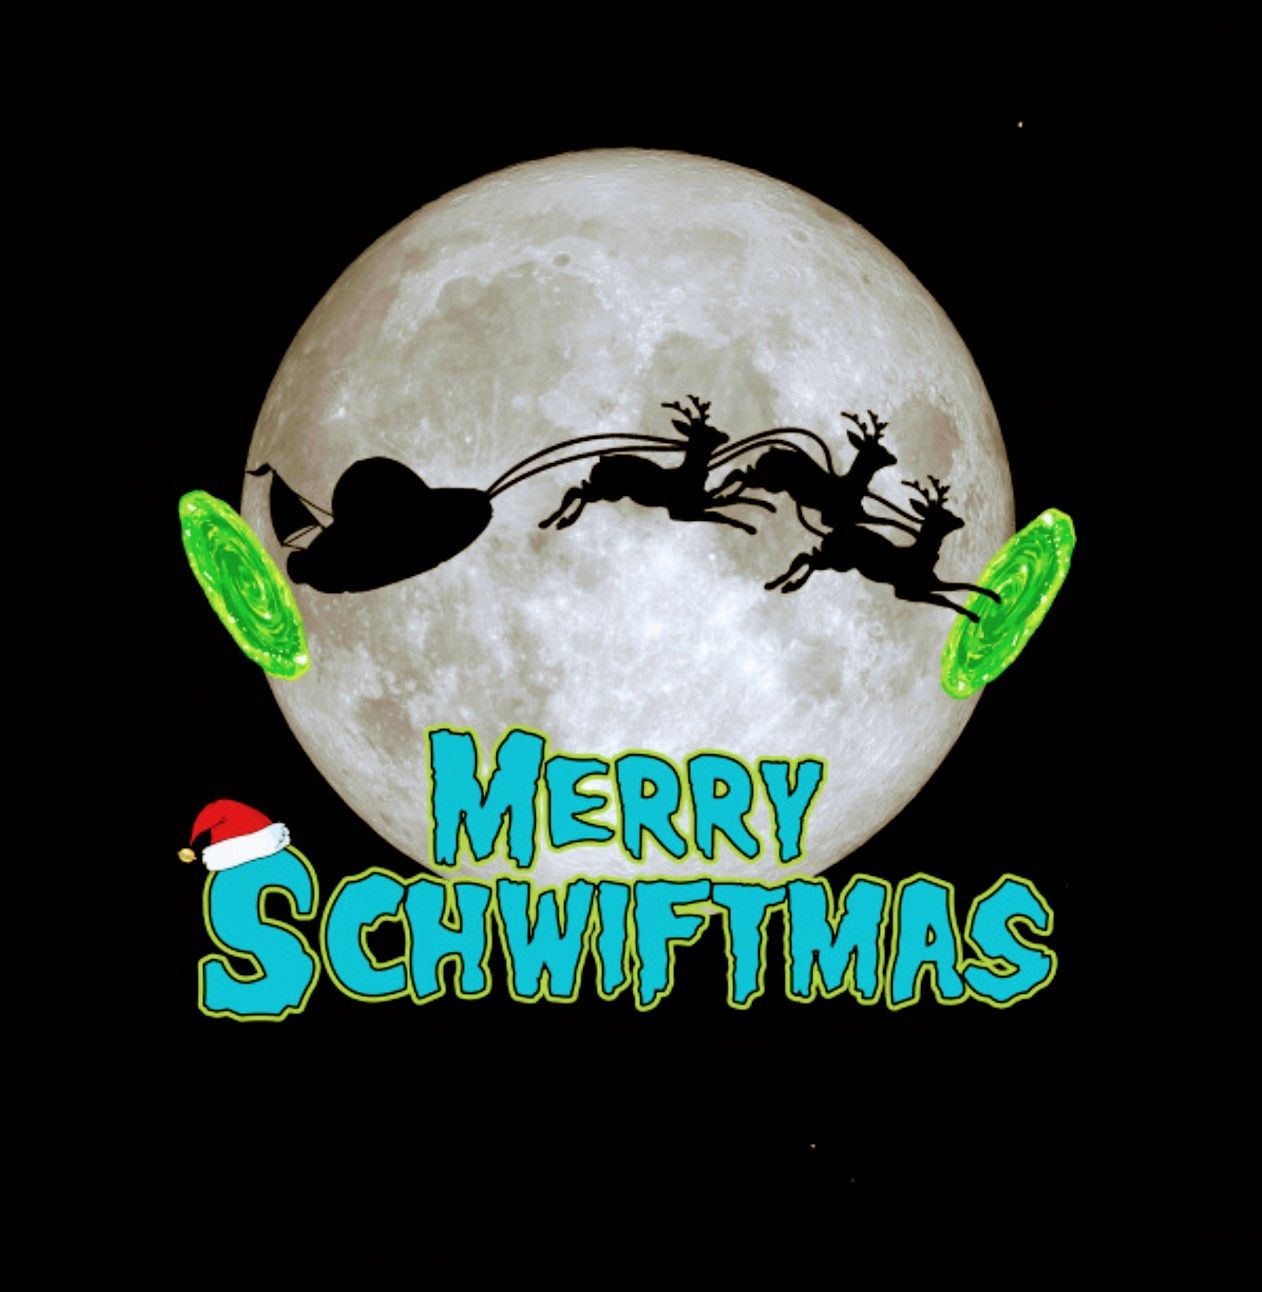 Rick and Morty x Merry Schwiftmas (With images)   Rick and ...